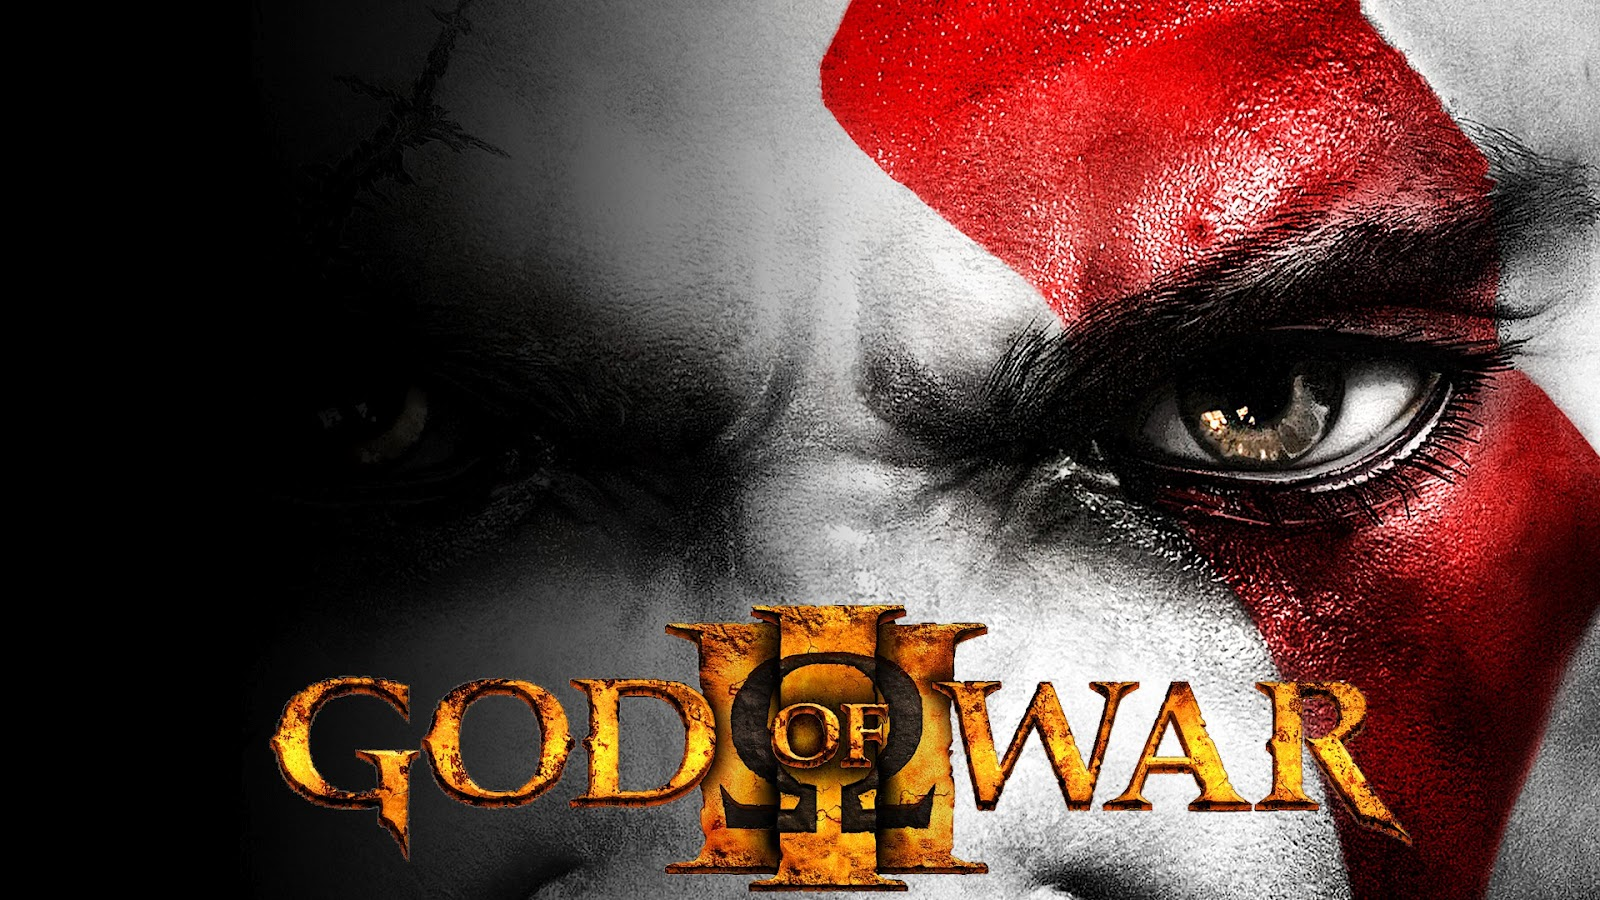 http://2.bp.blogspot.com/-XNeVnpdmCsw/UBCXL4YOU-I/AAAAAAAABf8/AxZ_5WM71tQ/s1600/1273583415_God-of-War-III-PlayStation-3-Avec-Logo-1920x1080Wallpaper.jpg